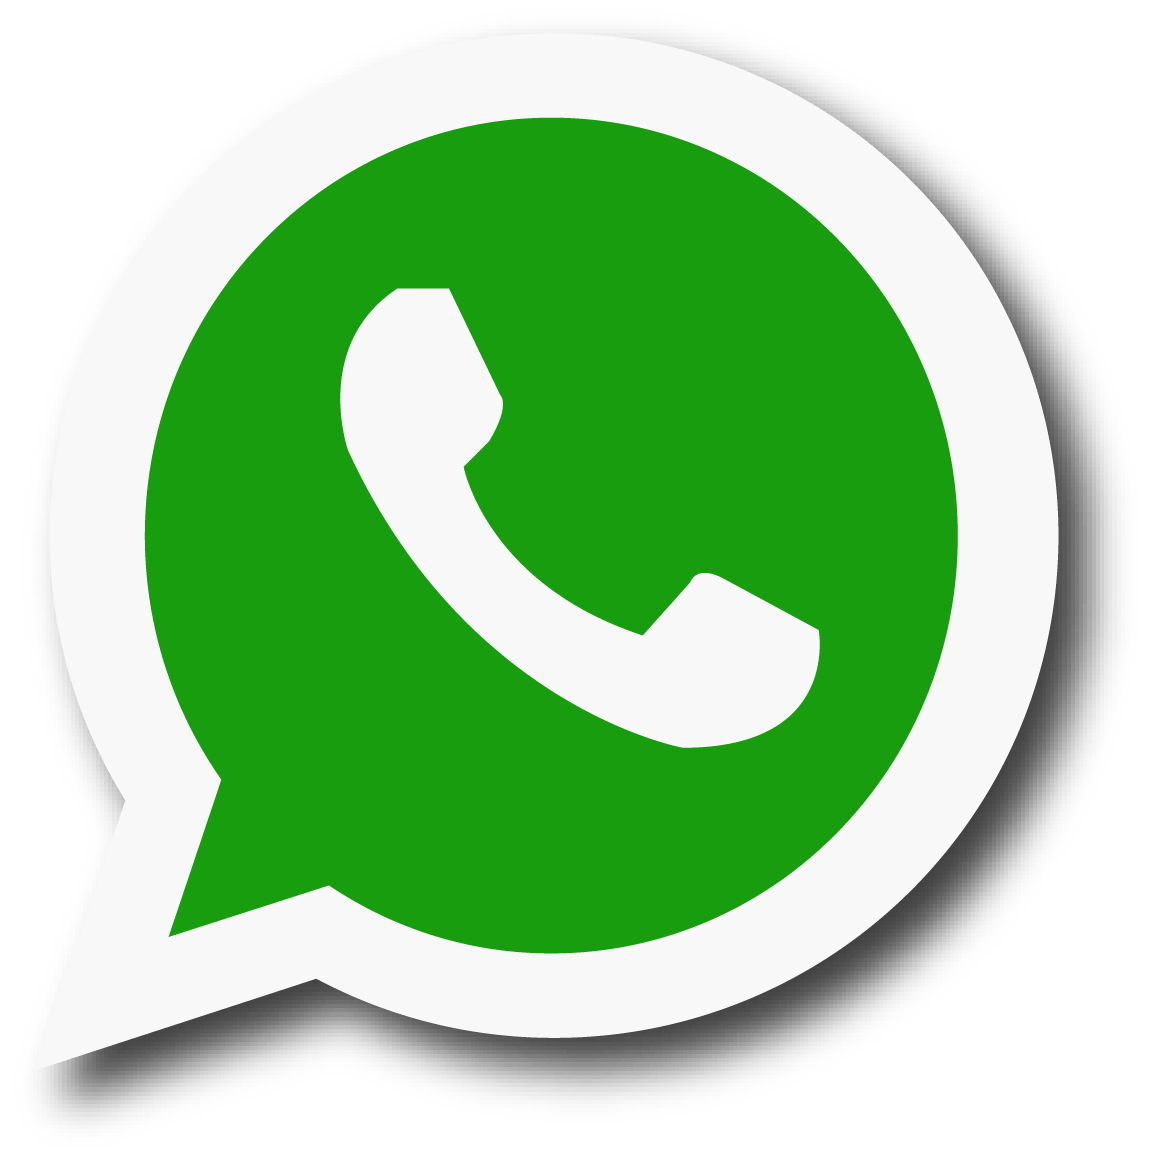 whatsapp logo vector Copy